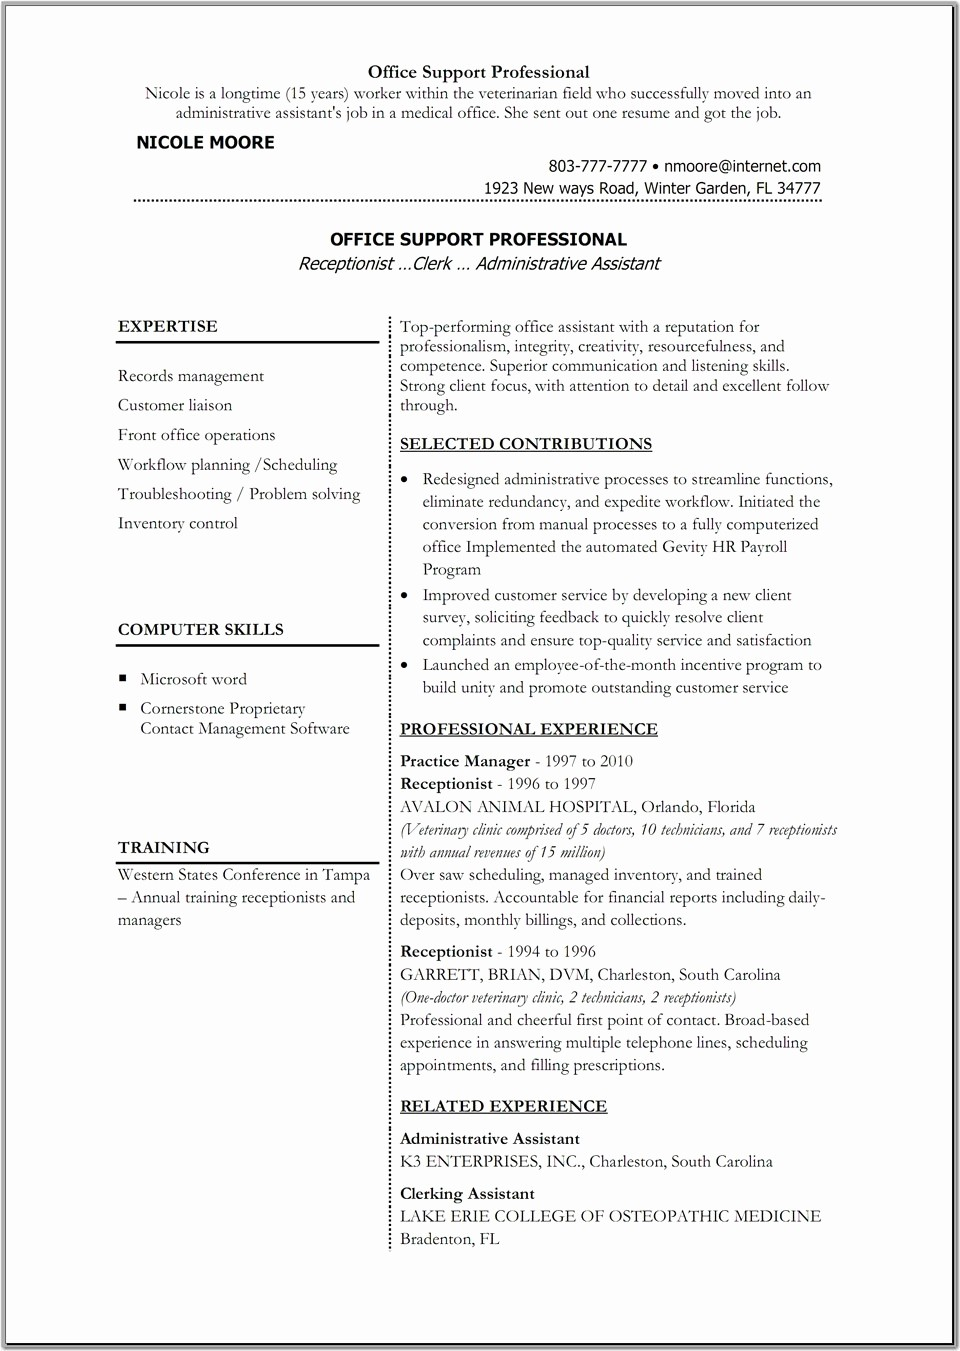 Where to Find Resume Templates Luxury Free Resume Template for Mac Word